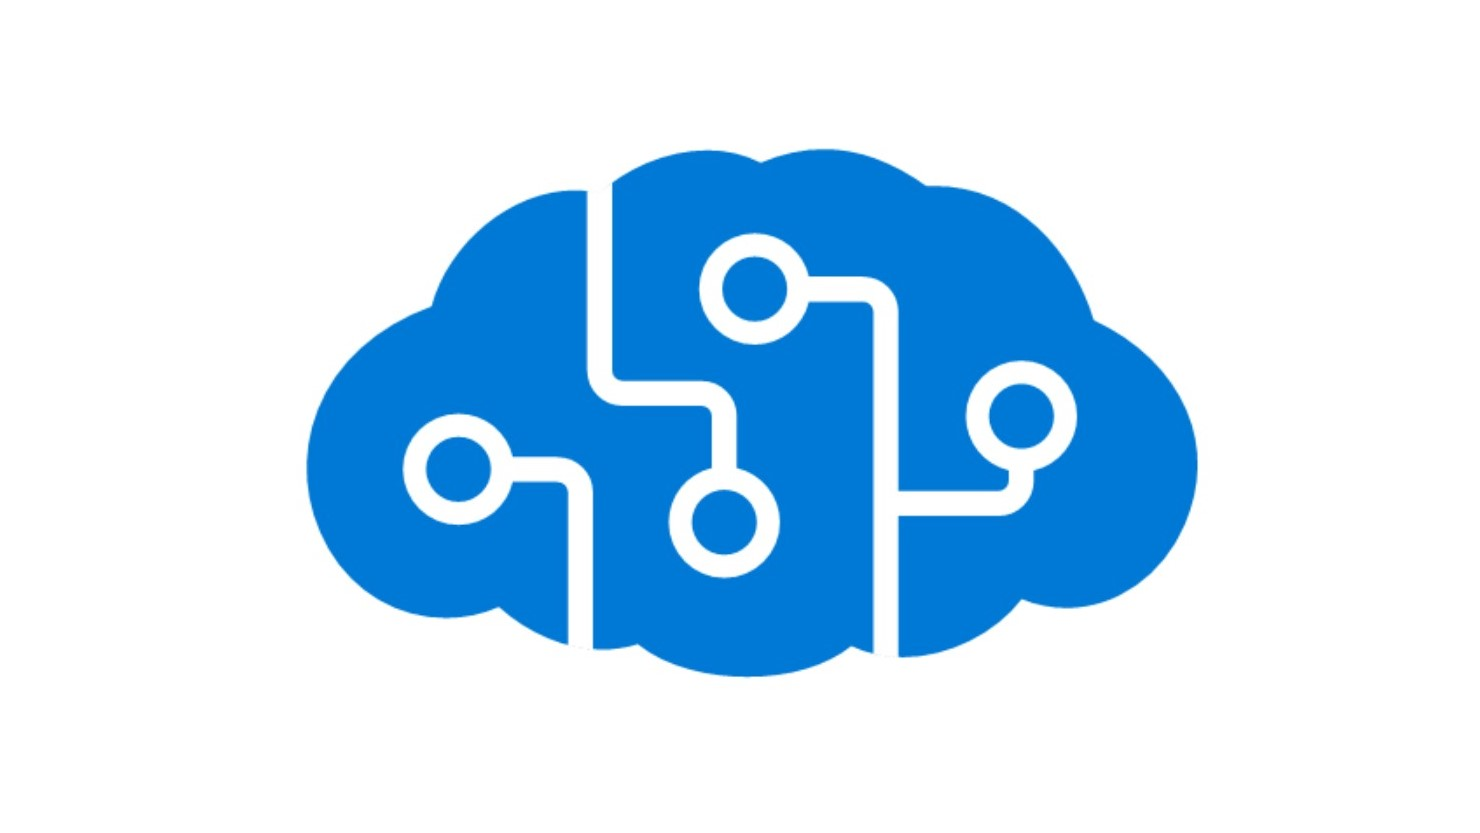 What are Azure Cognitive Services?